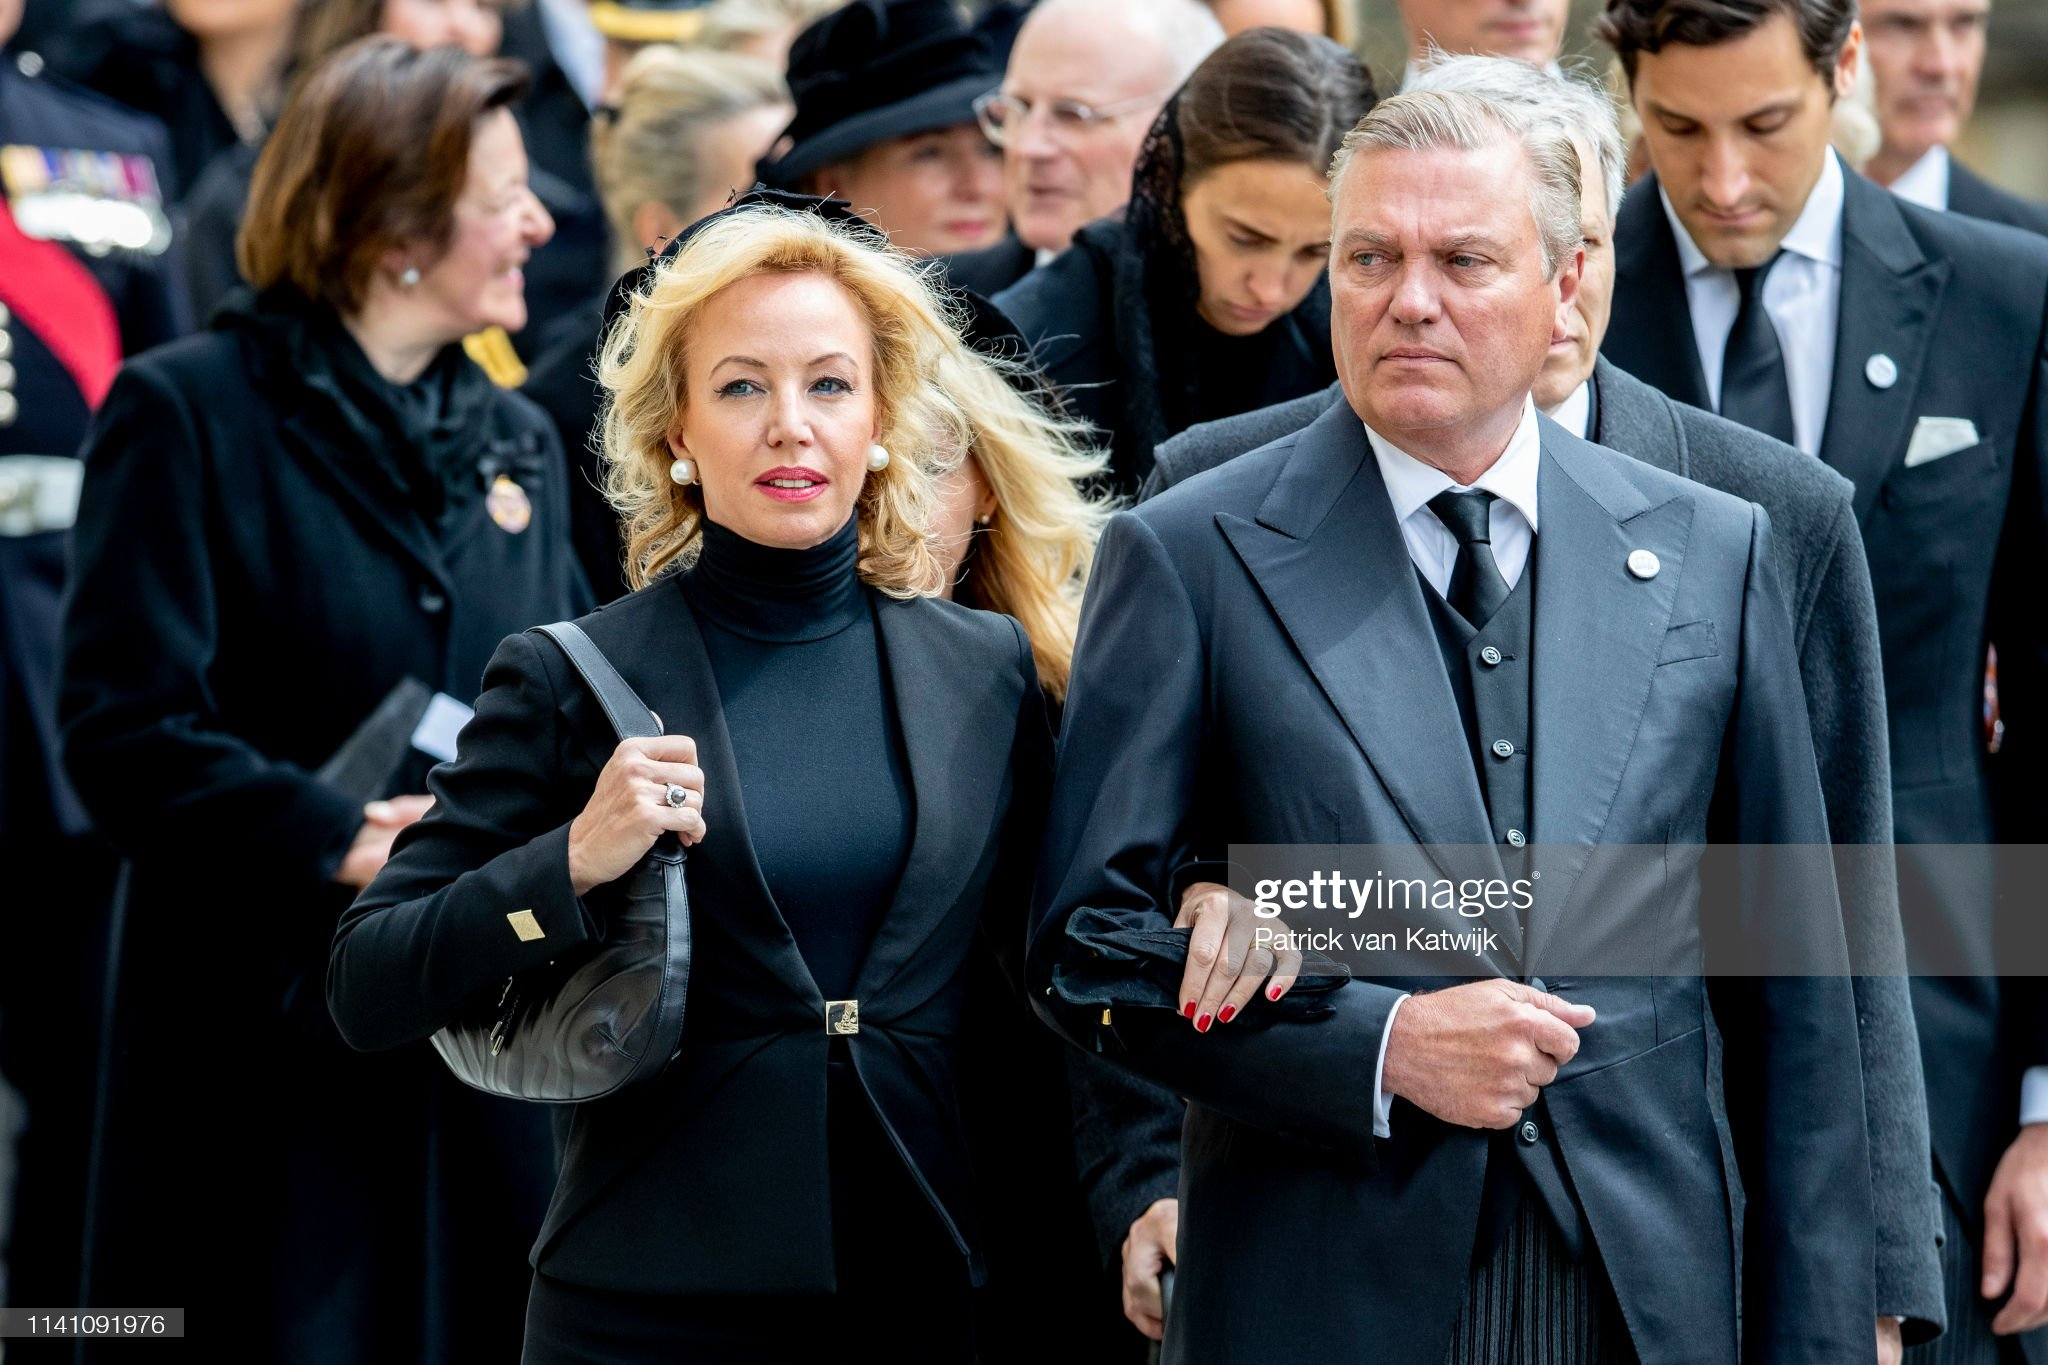 Похороны Великого Герцога Жана https://media.gettyimages.com/photos/prince-carlo-de-bourbon-and-princess-camilla-de-bourbon-attend-the-picture-id1141091976?s=2048x2048